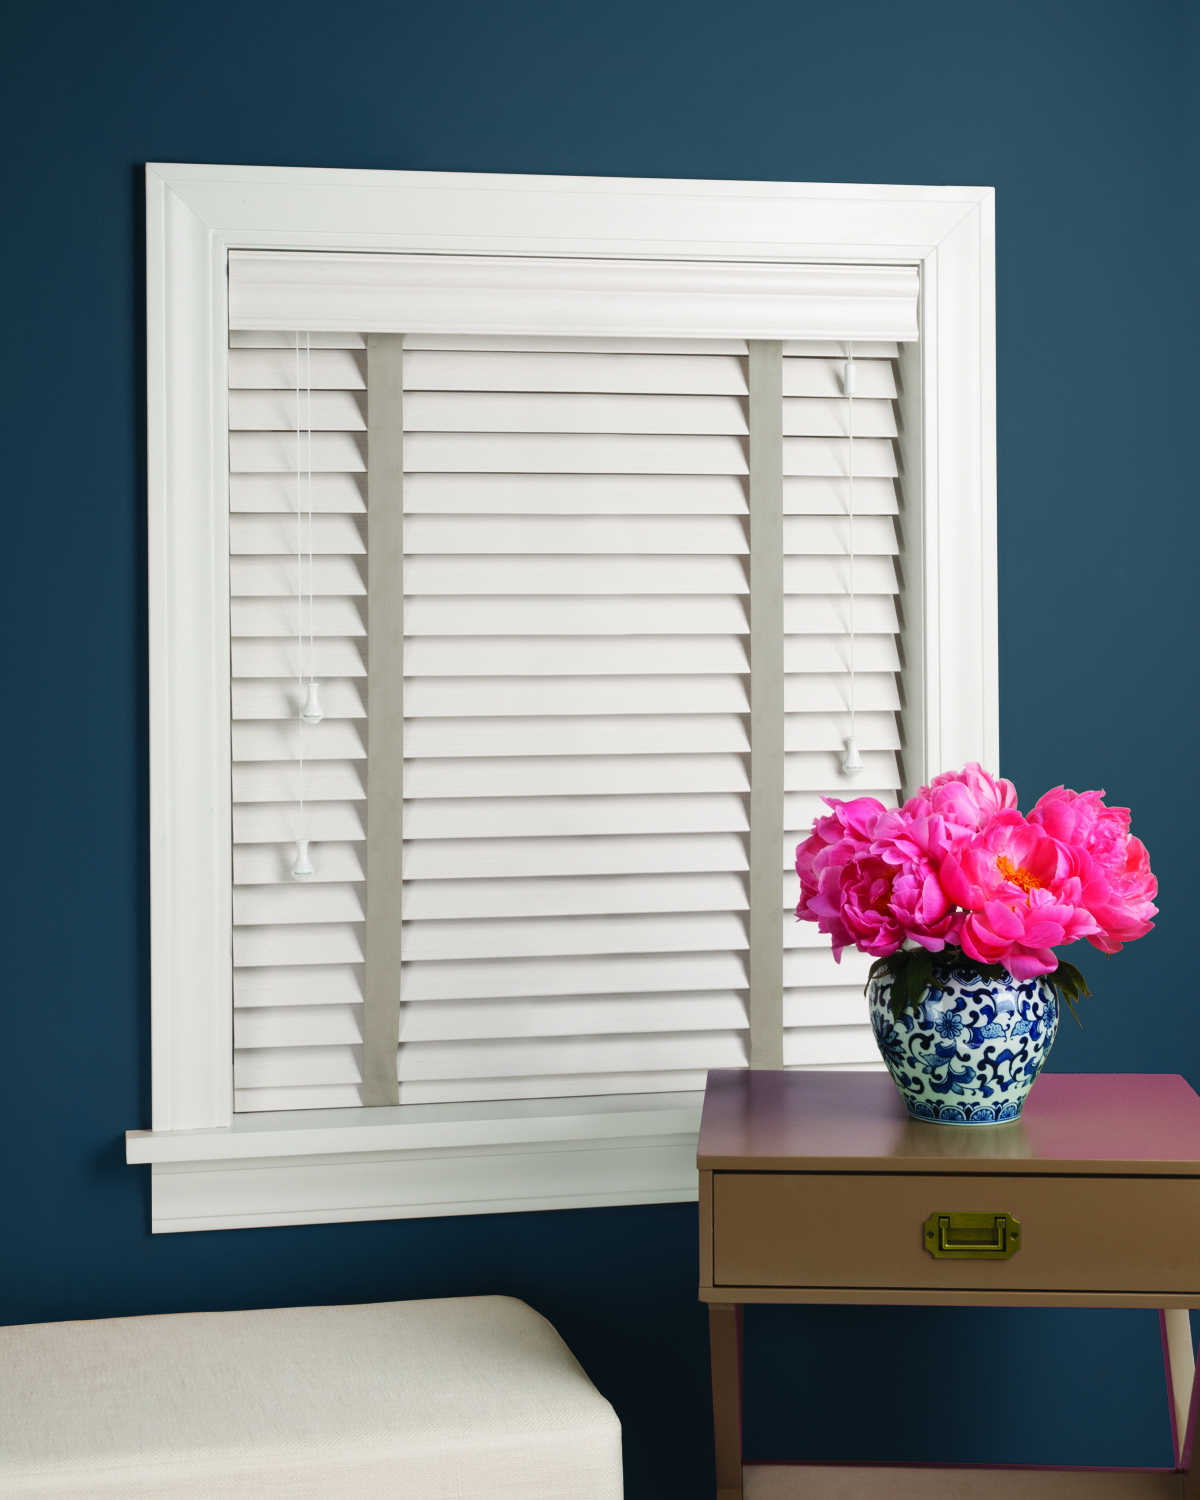 3 easy questions for choosing the right window blinds for your